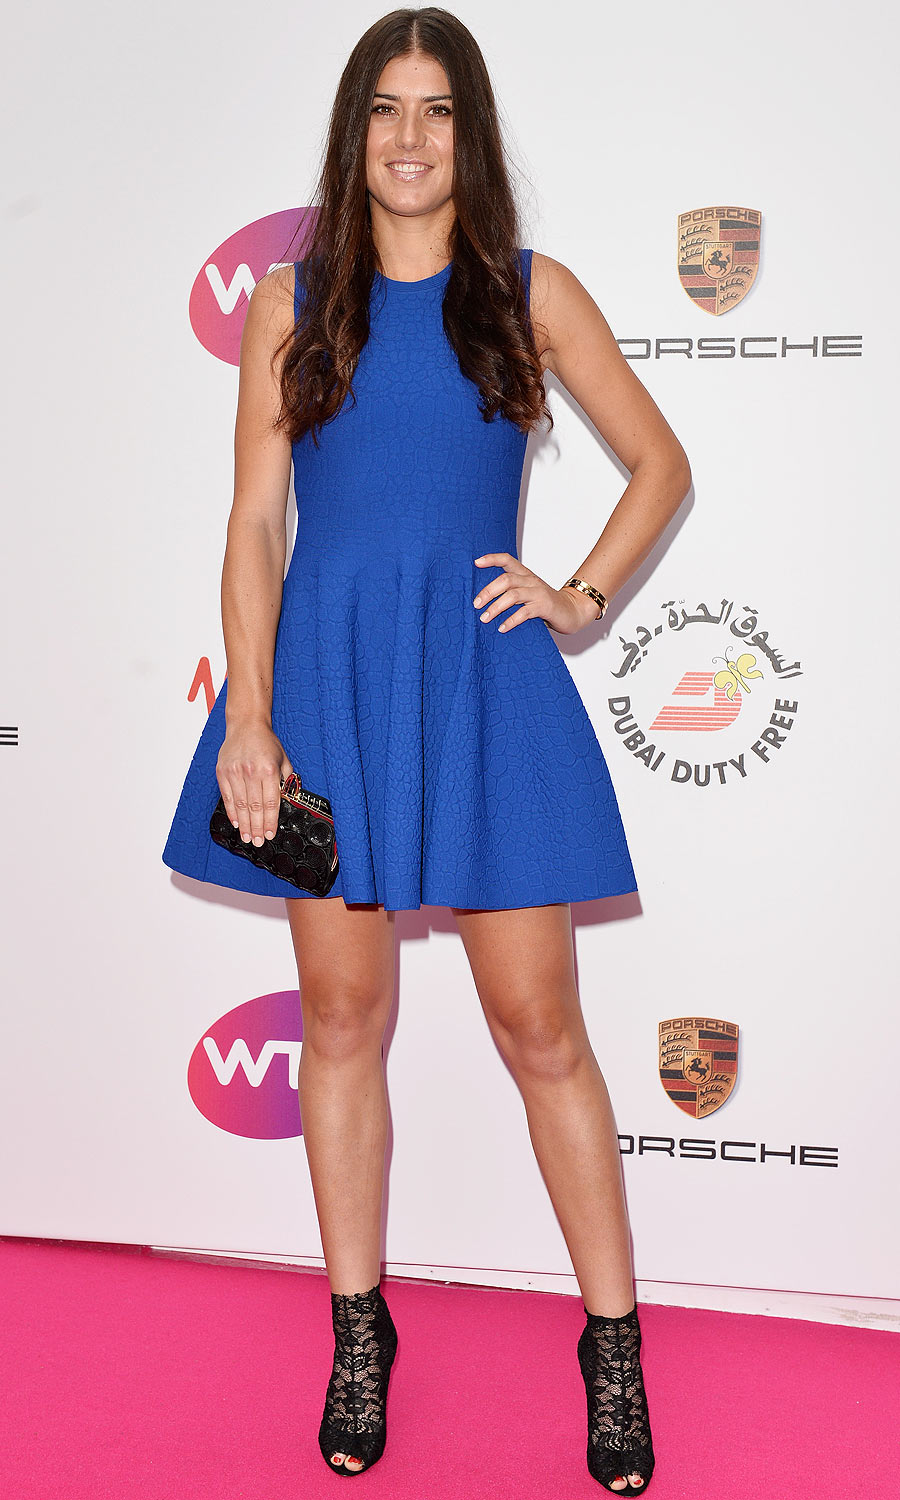 Sorana Cirstea: In Alexander McQueen, in case you were wondering.